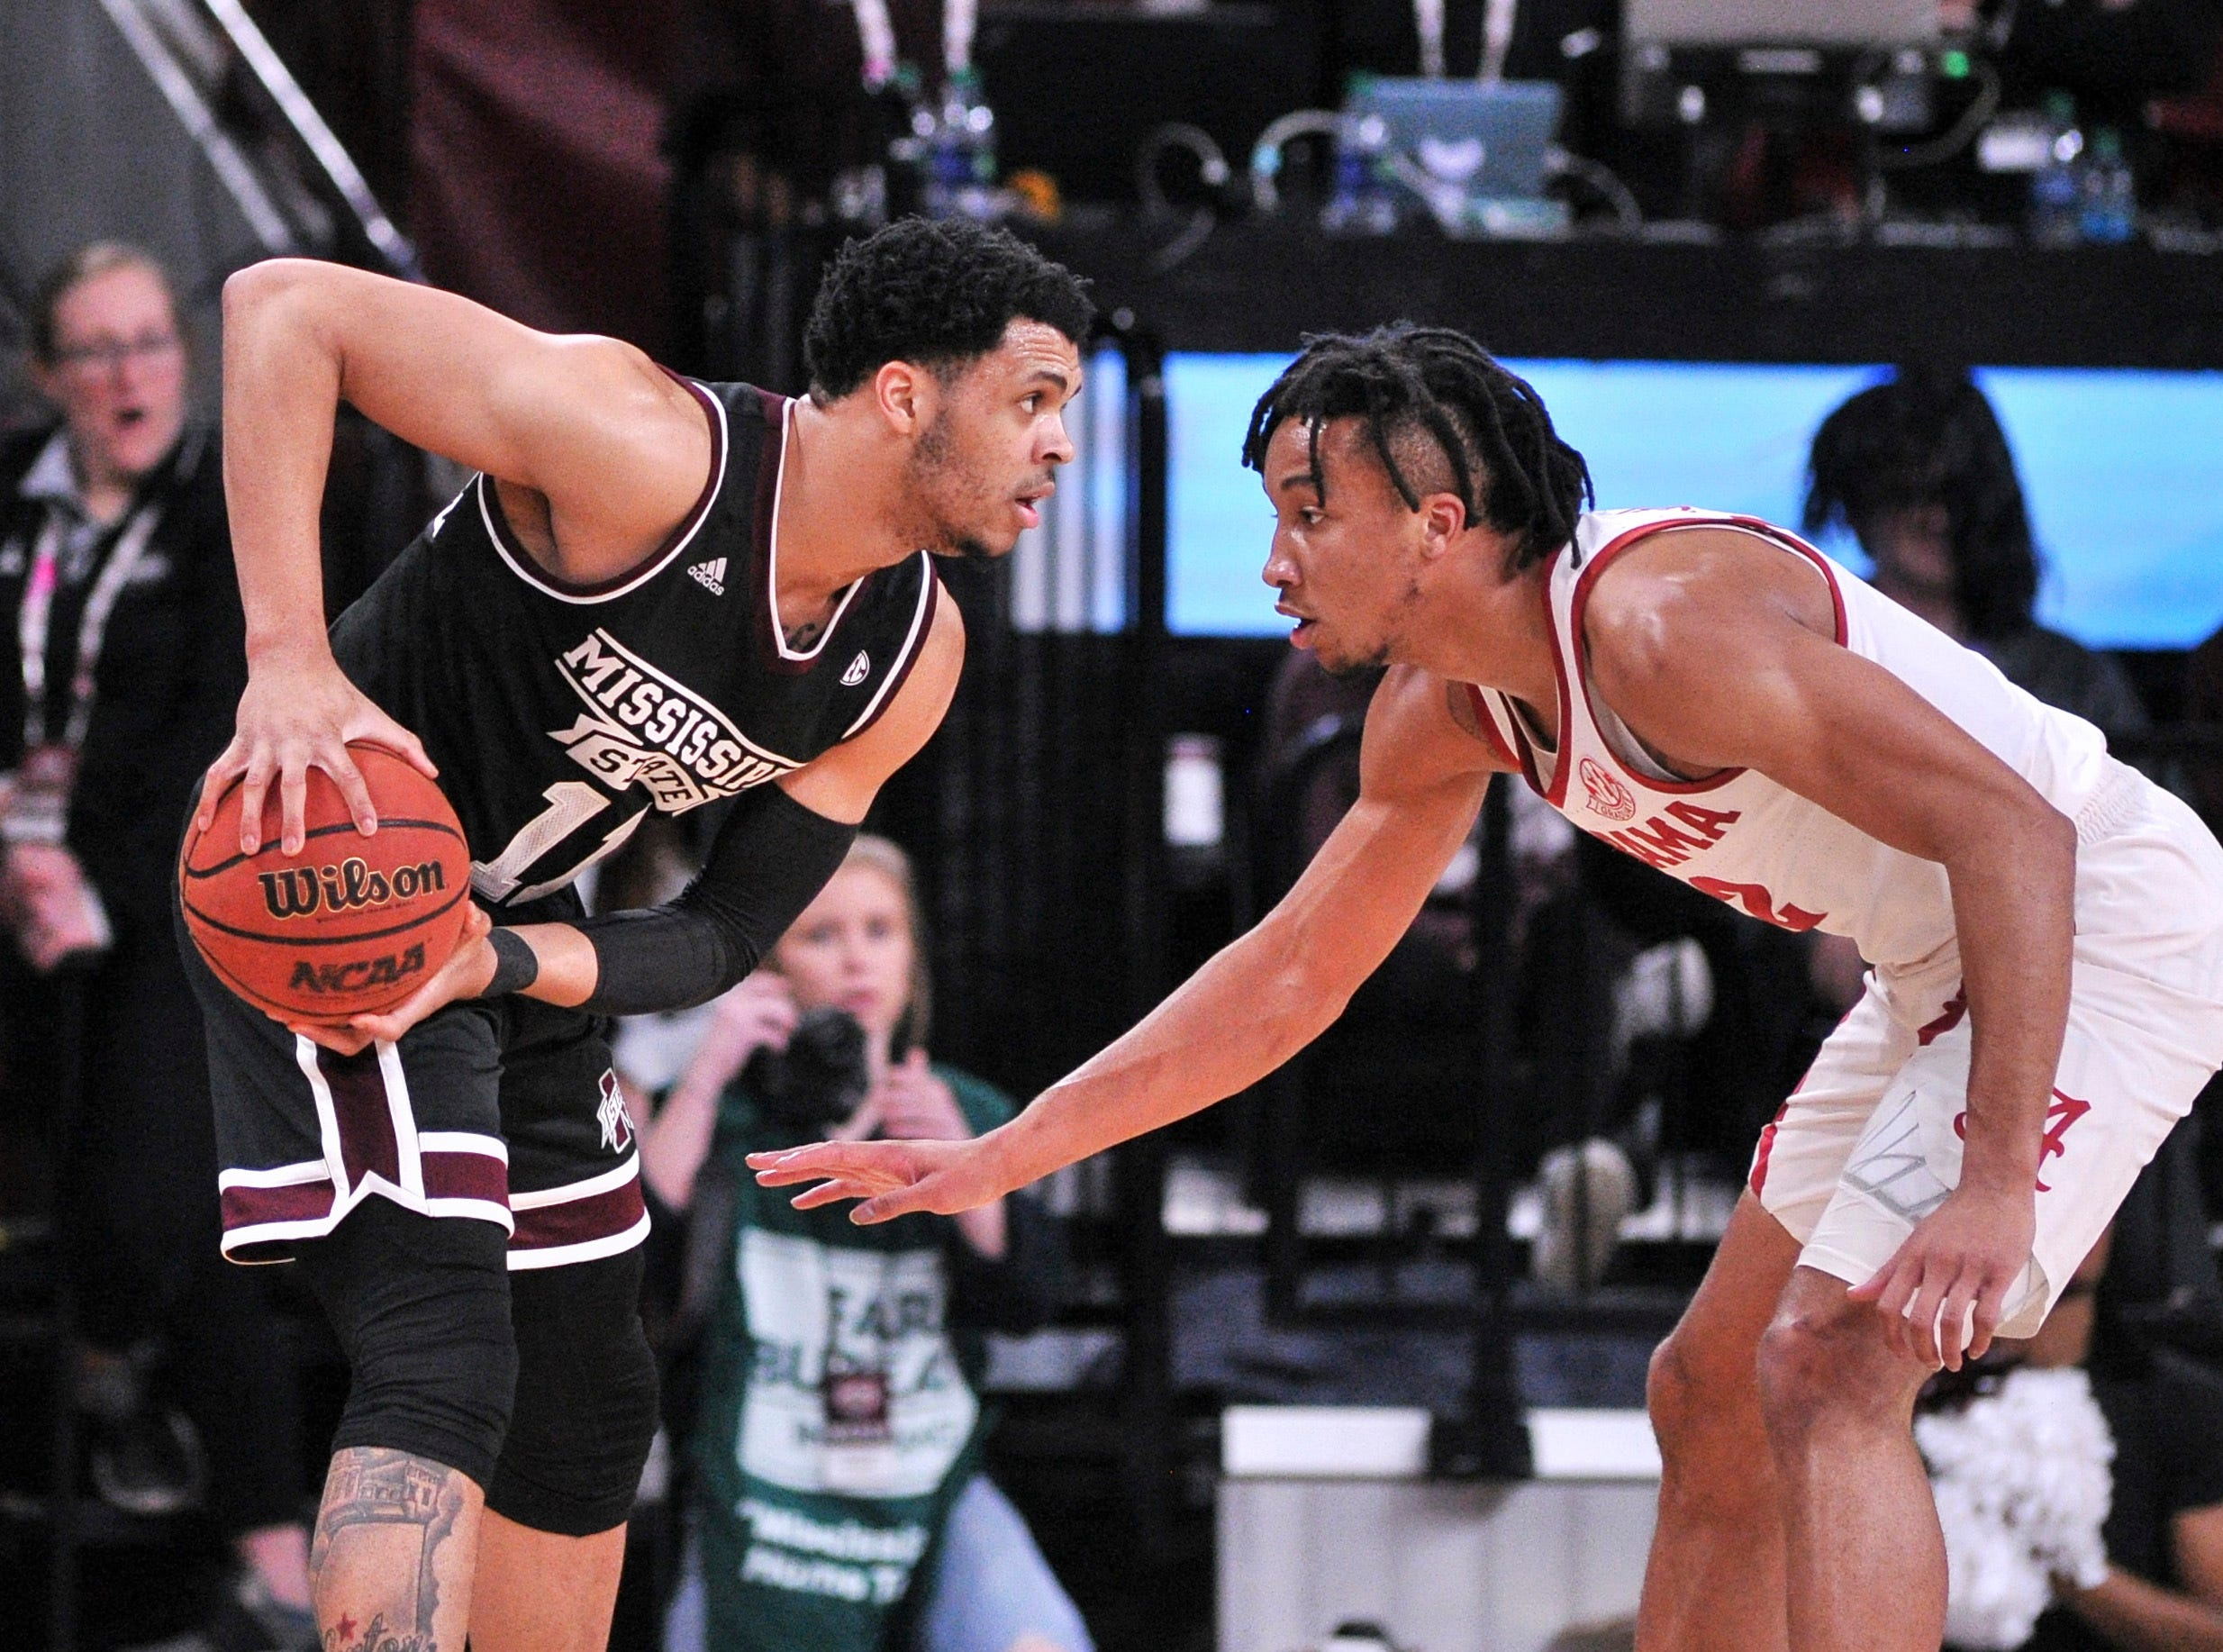 Feb 12, 2019; Starkville, MS, USA; Mississippi State Bulldogs guard Quinndary Weatherspoon (11) handles the ball against Alabama Crimson Tide guard Dazon Ingram (12) during the second half at Humphrey Coliseum. Mandatory Credit: Justin Ford-USA TODAY Sports